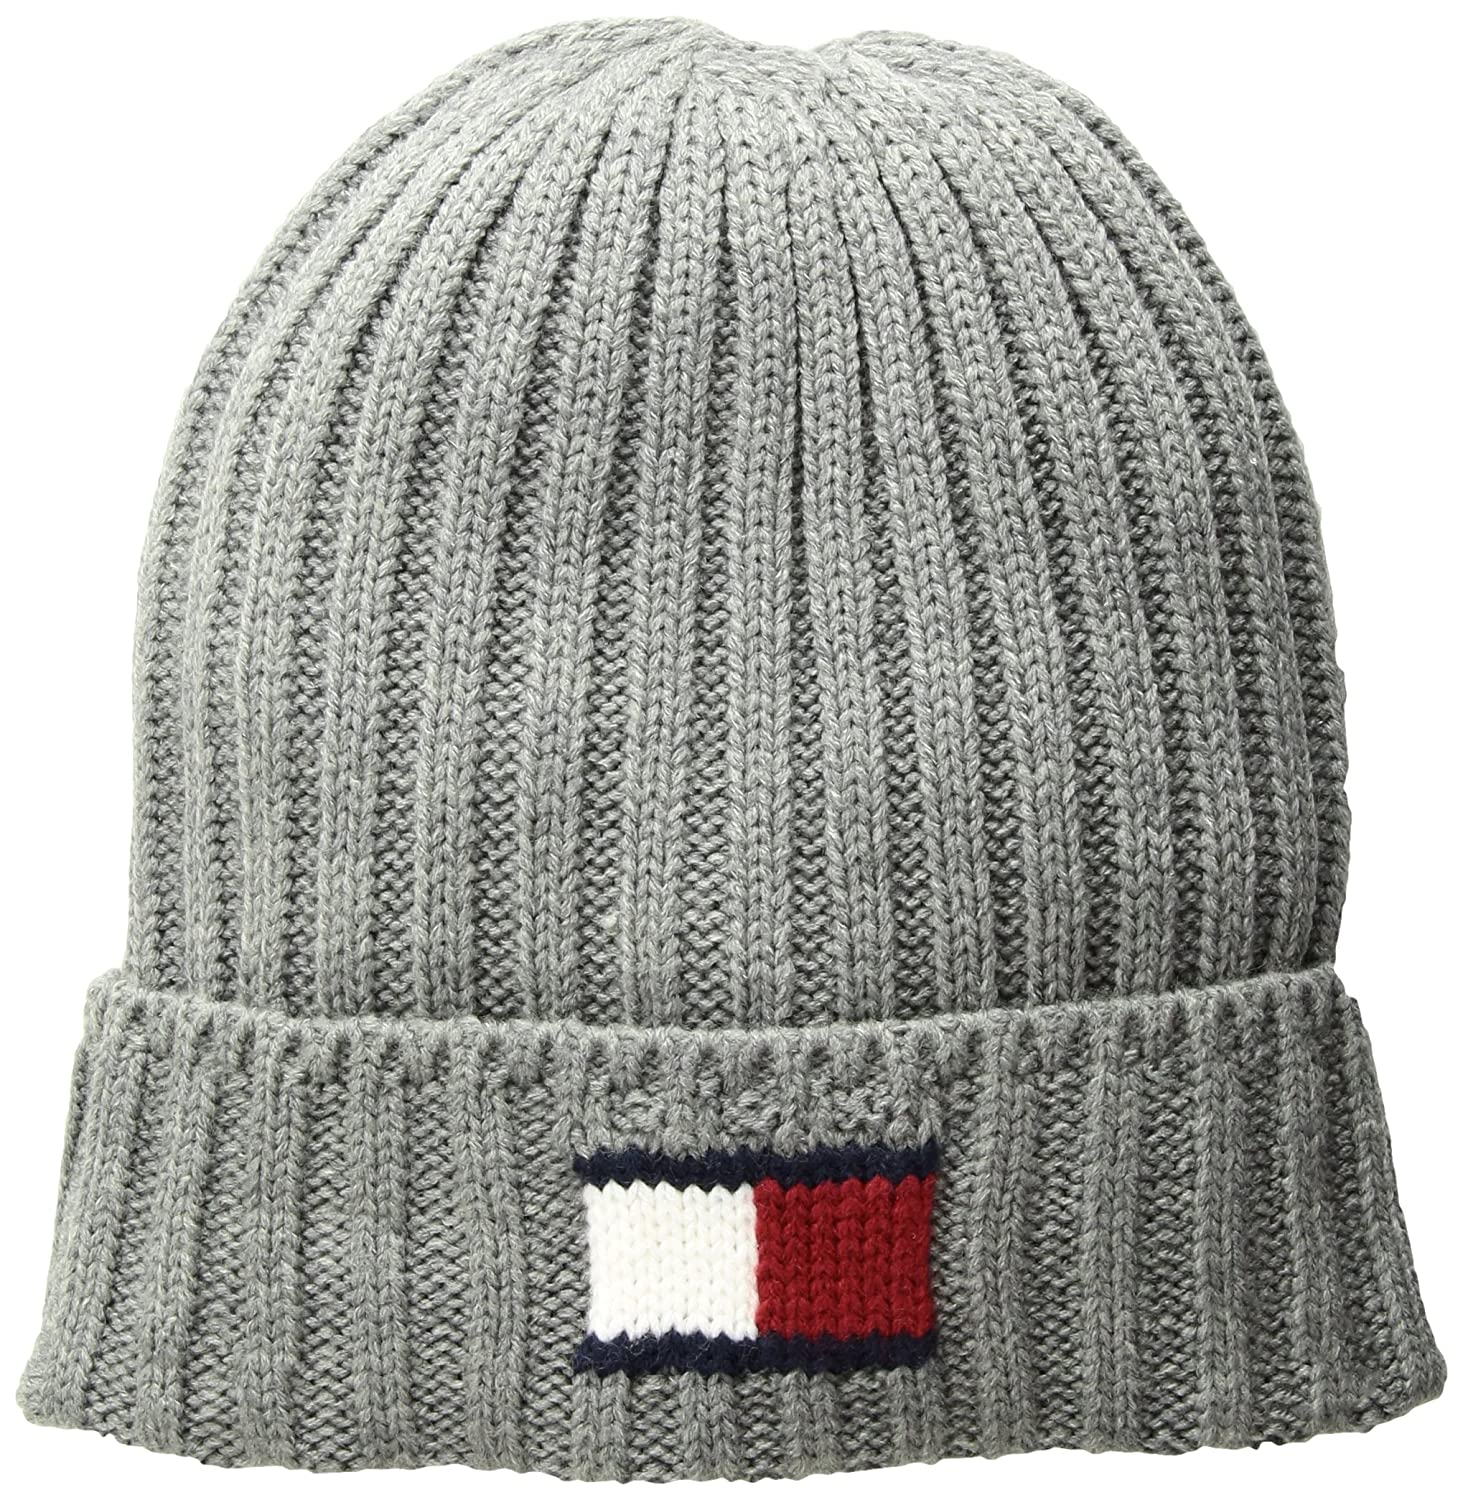 e432b3d89 Tommy Hilfiger Men's Knit Logo Cuffed Hat